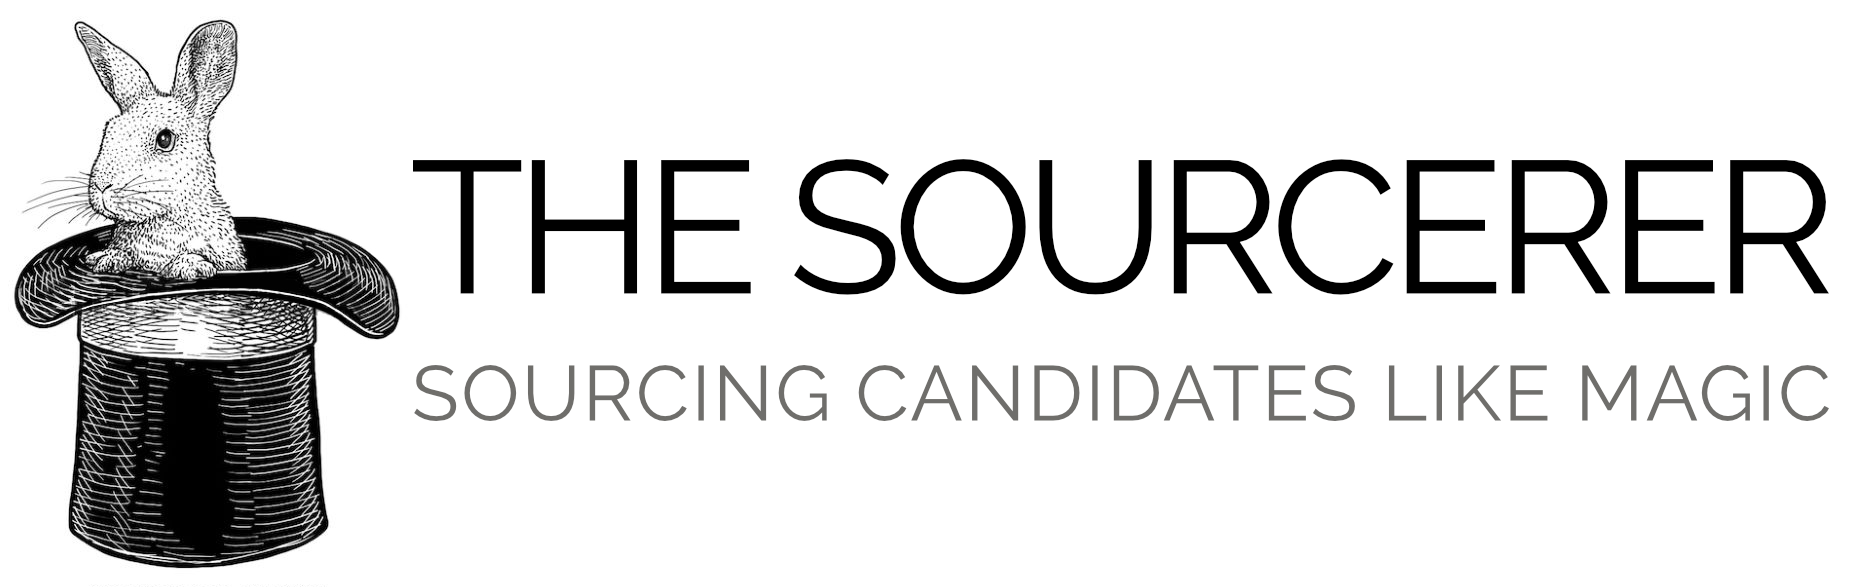 The Sourcerer - Sourcing Candidates Like Magic